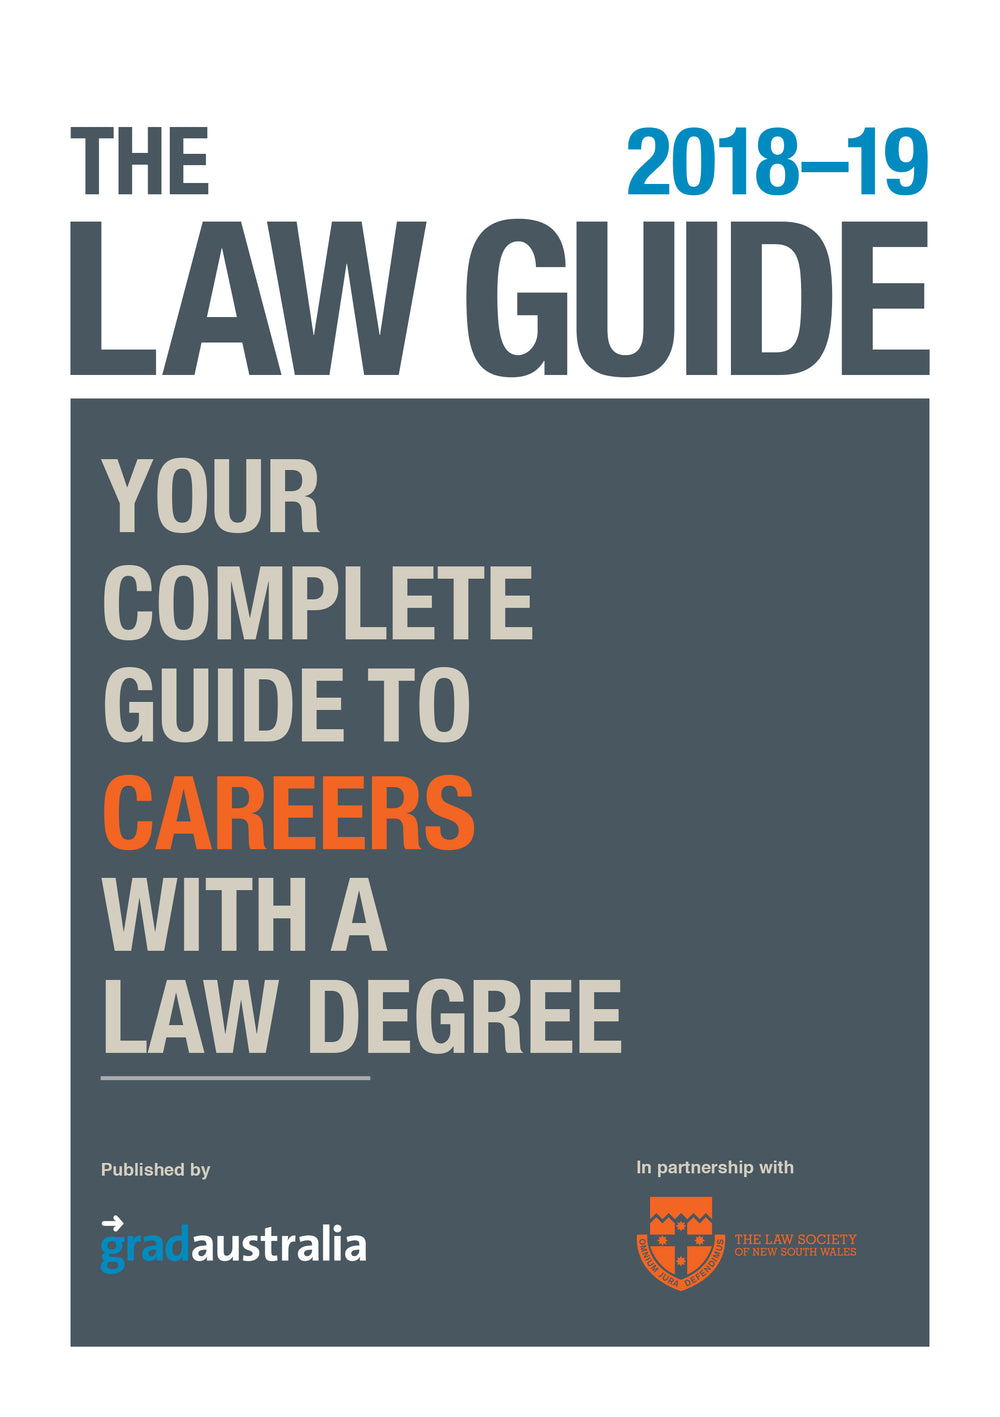 The Law Guide 2018-19